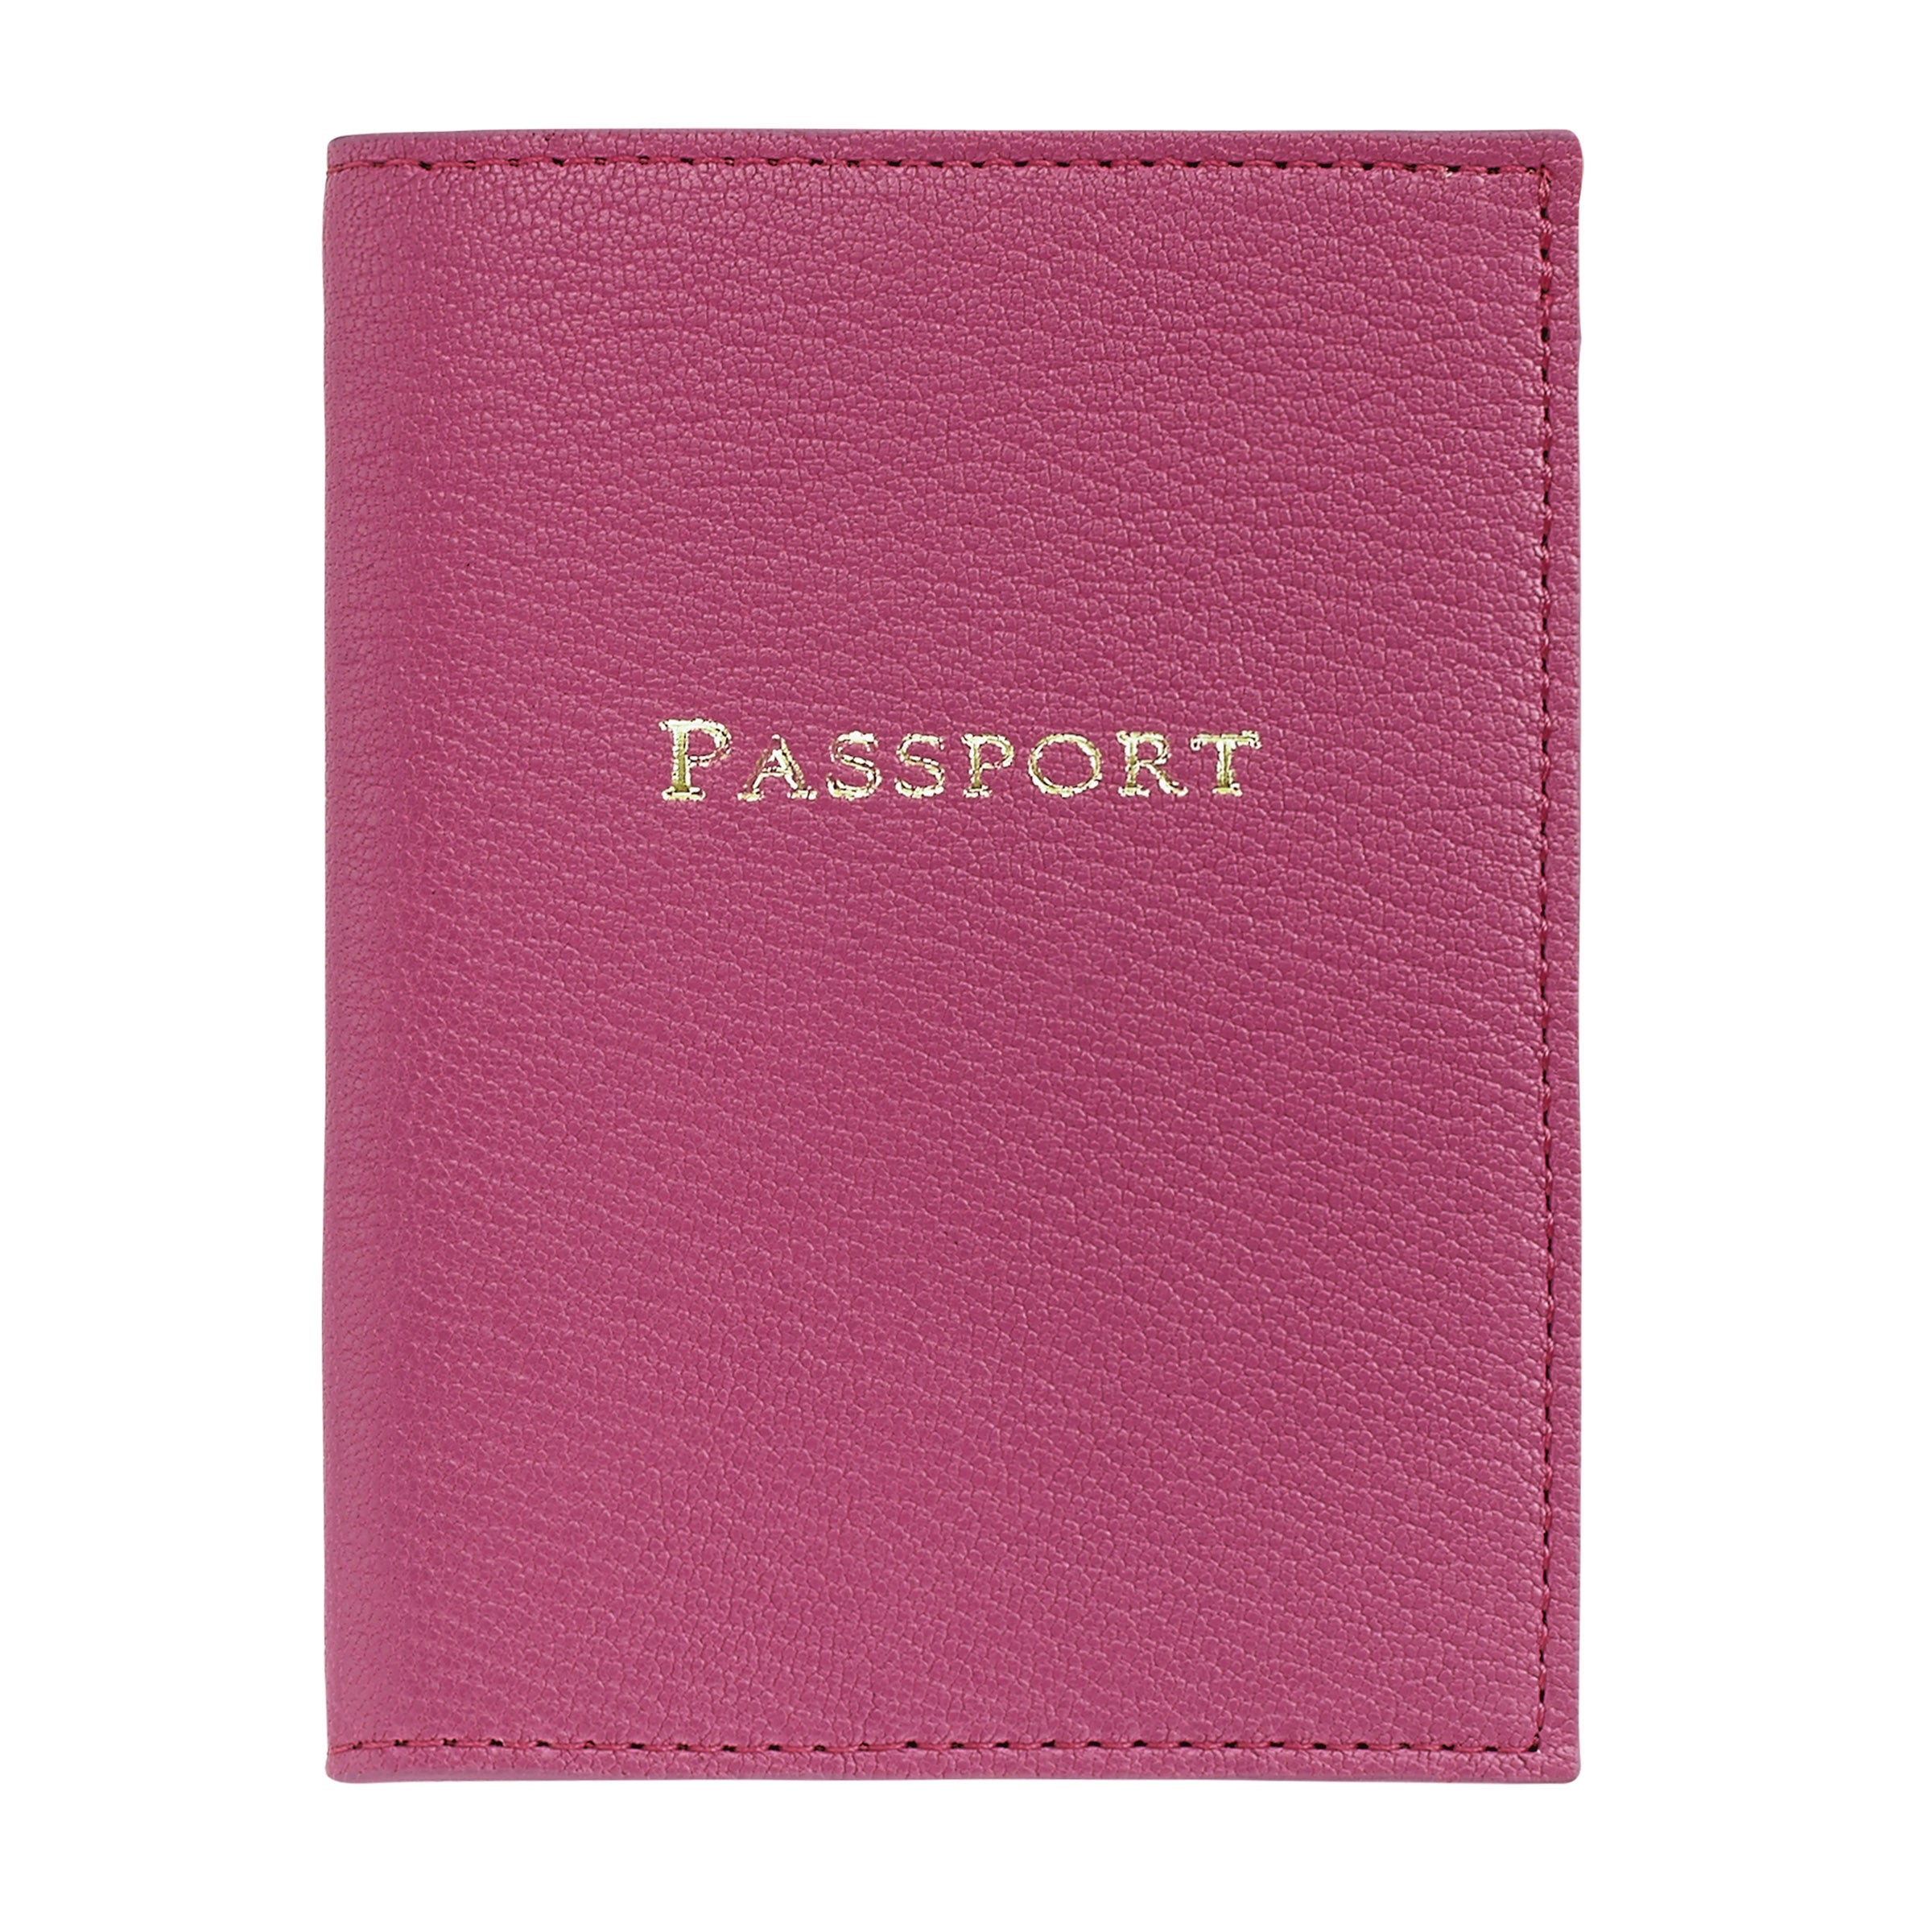 Passport Holder, Pink Leather